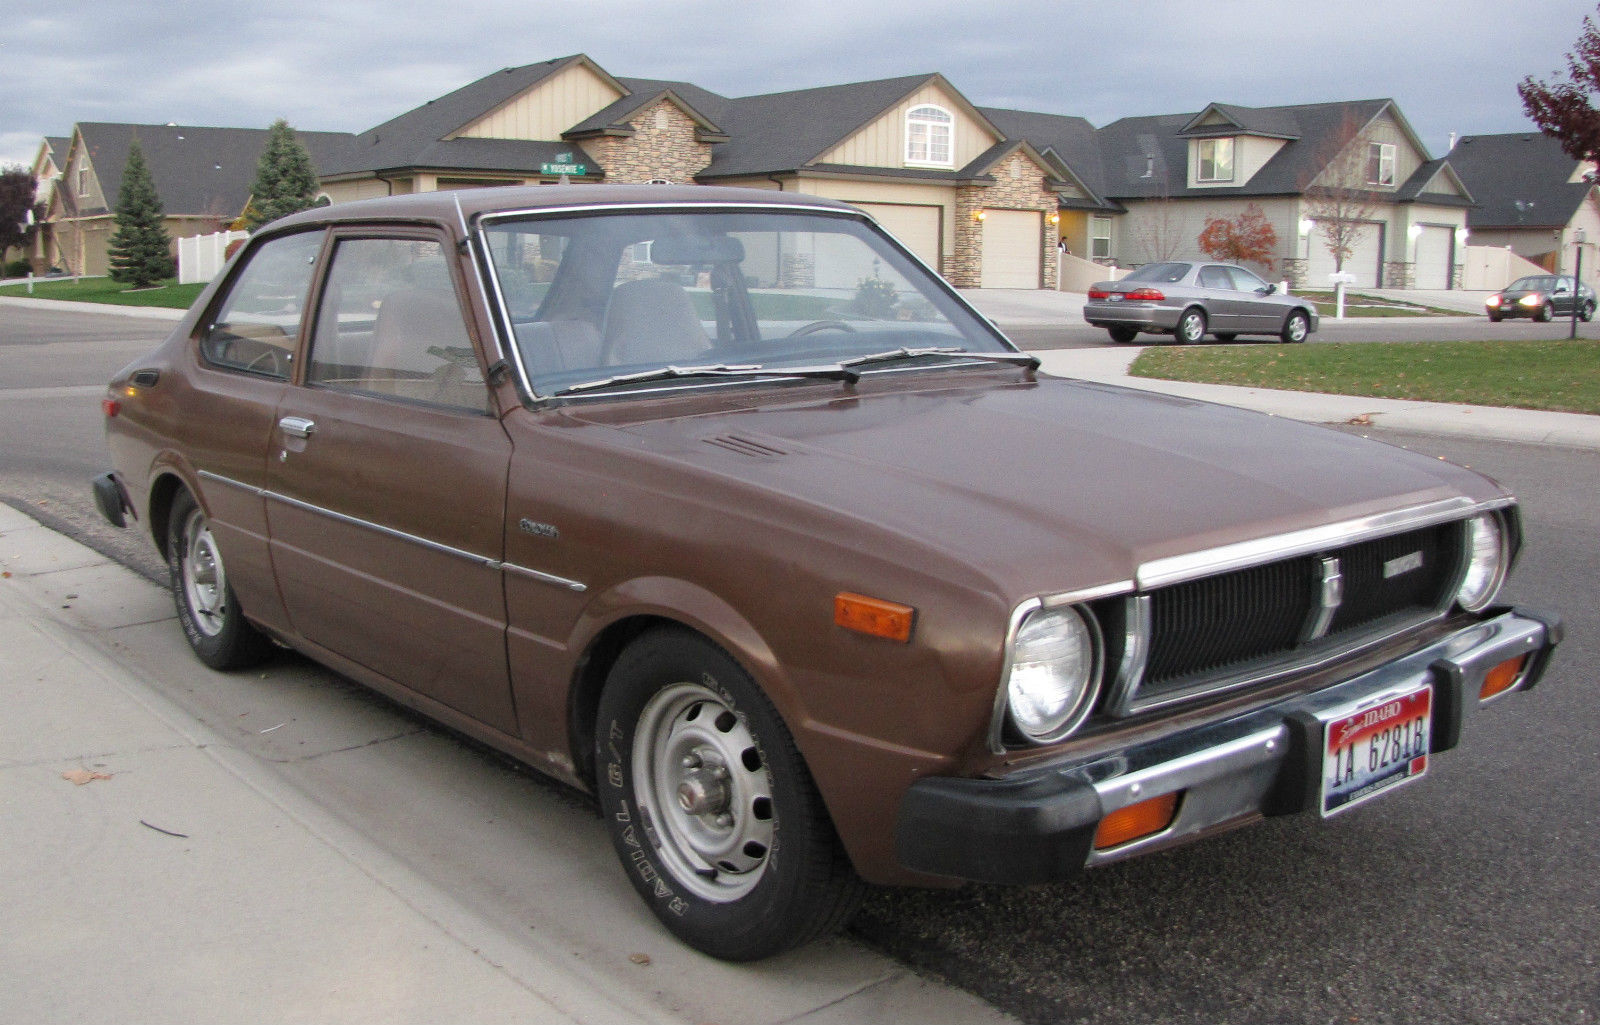 1979 toyota corolla coupe 2 door 1 6l ke30 no reserve classic toyota corolla 1979 for sale. Black Bedroom Furniture Sets. Home Design Ideas